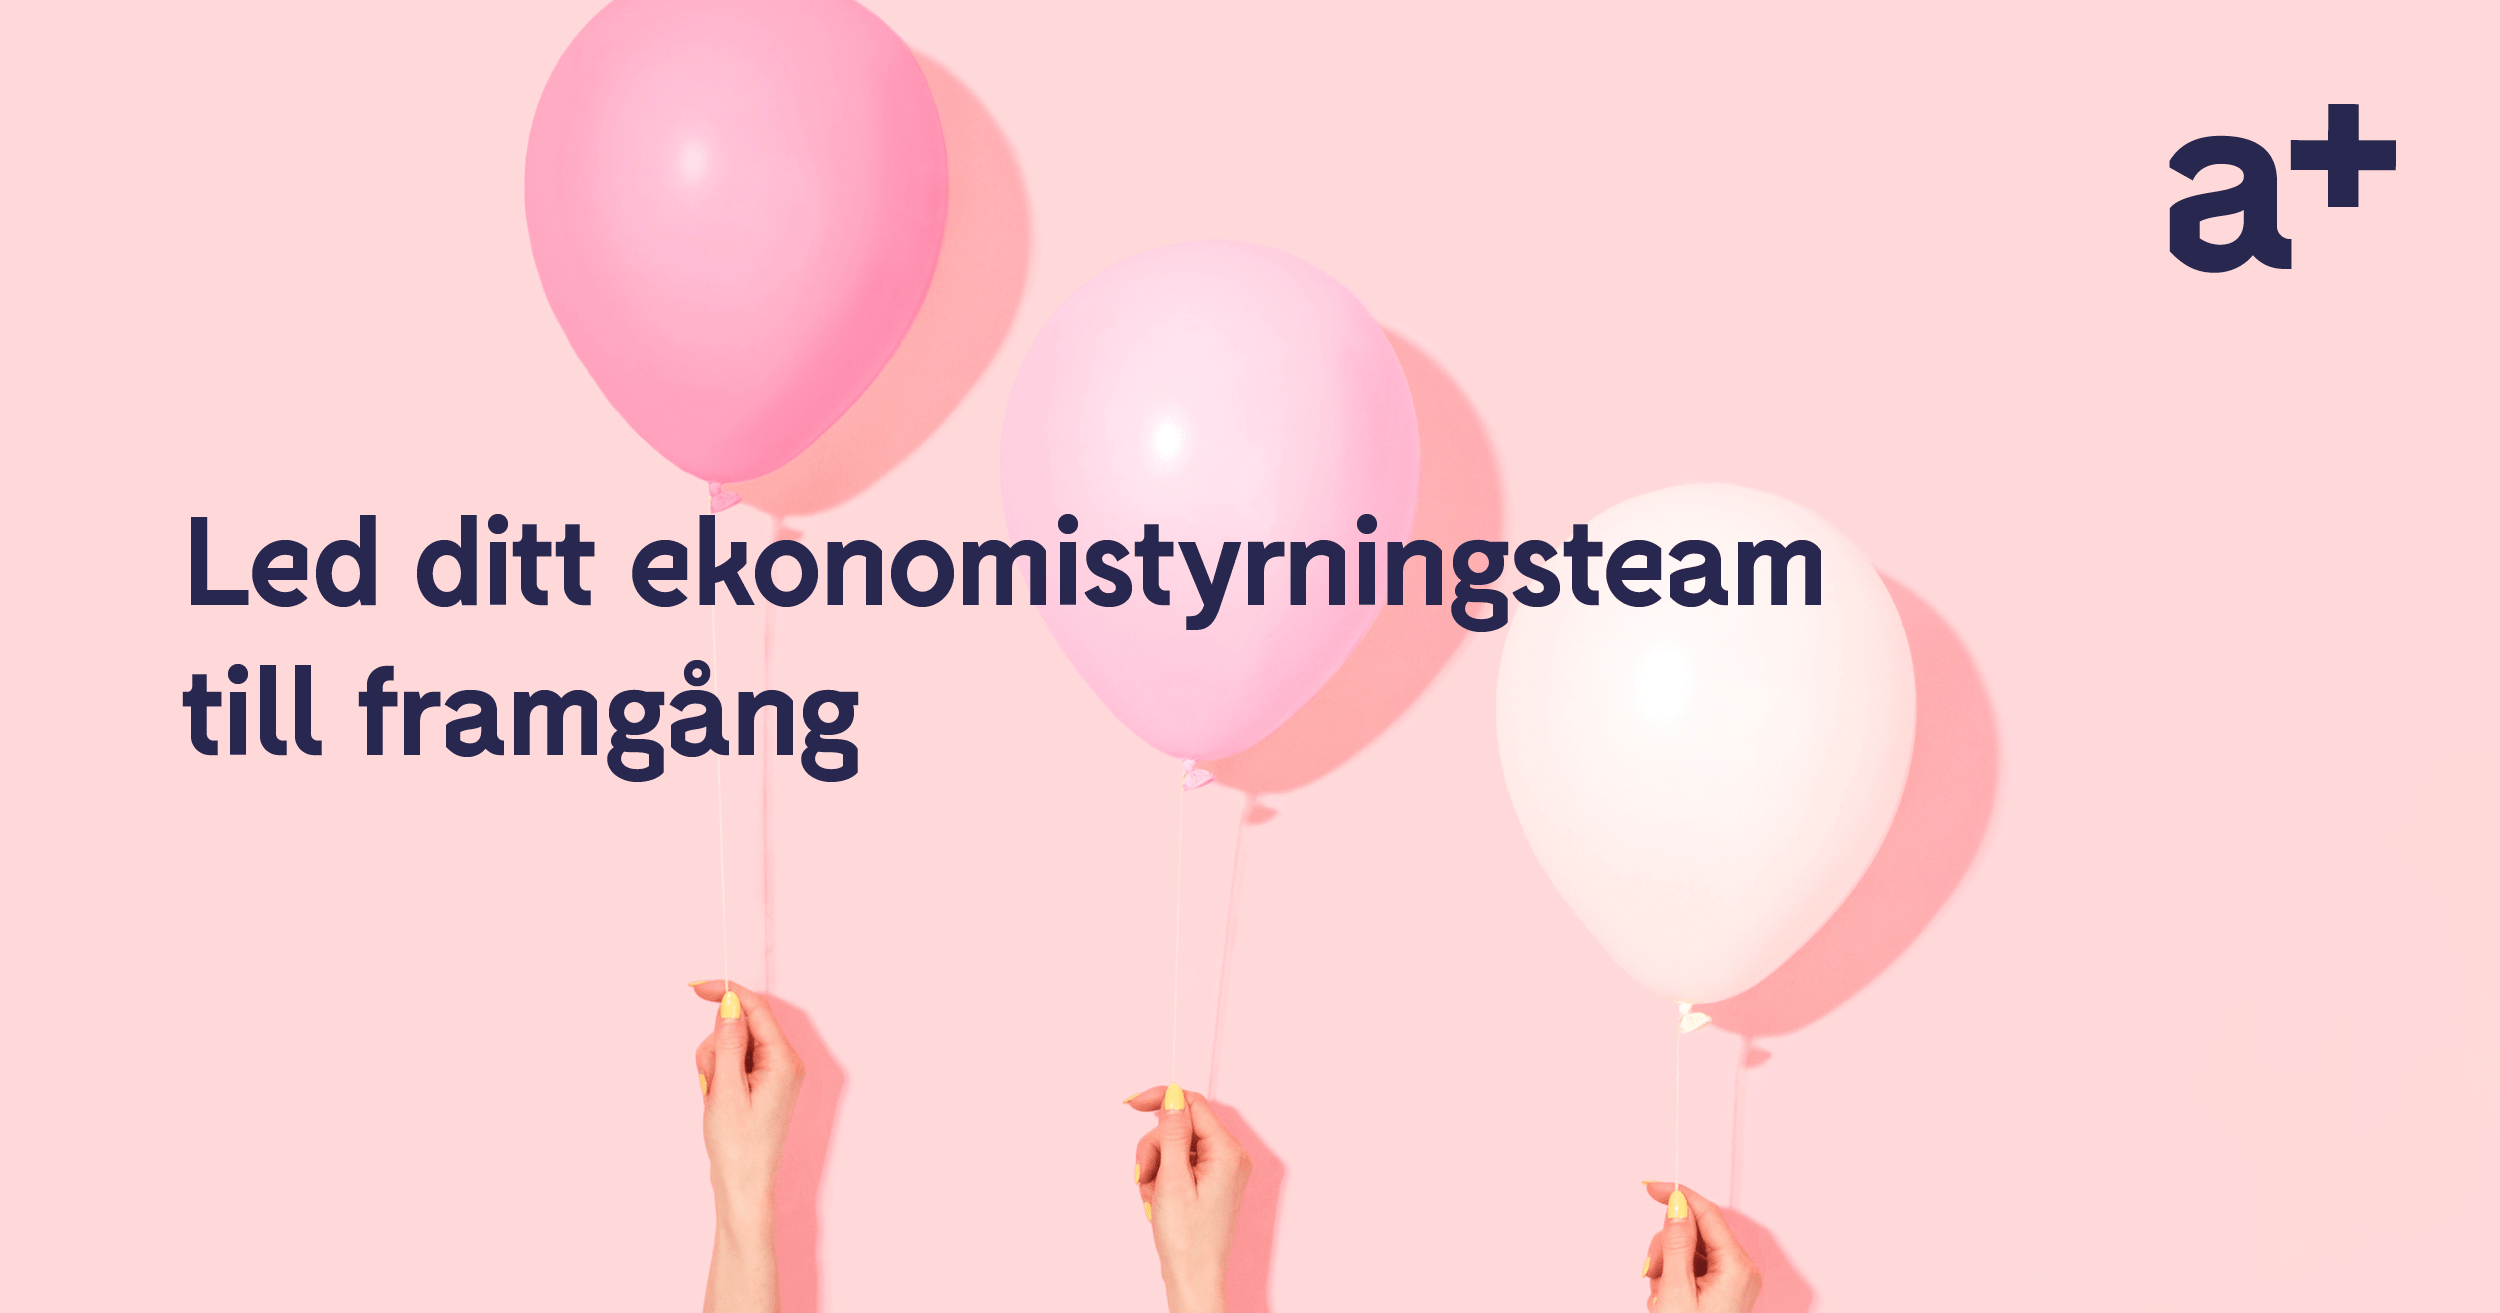 SOME_led_ditt_ekonomistyrningsteam_till_framgang_0719-min